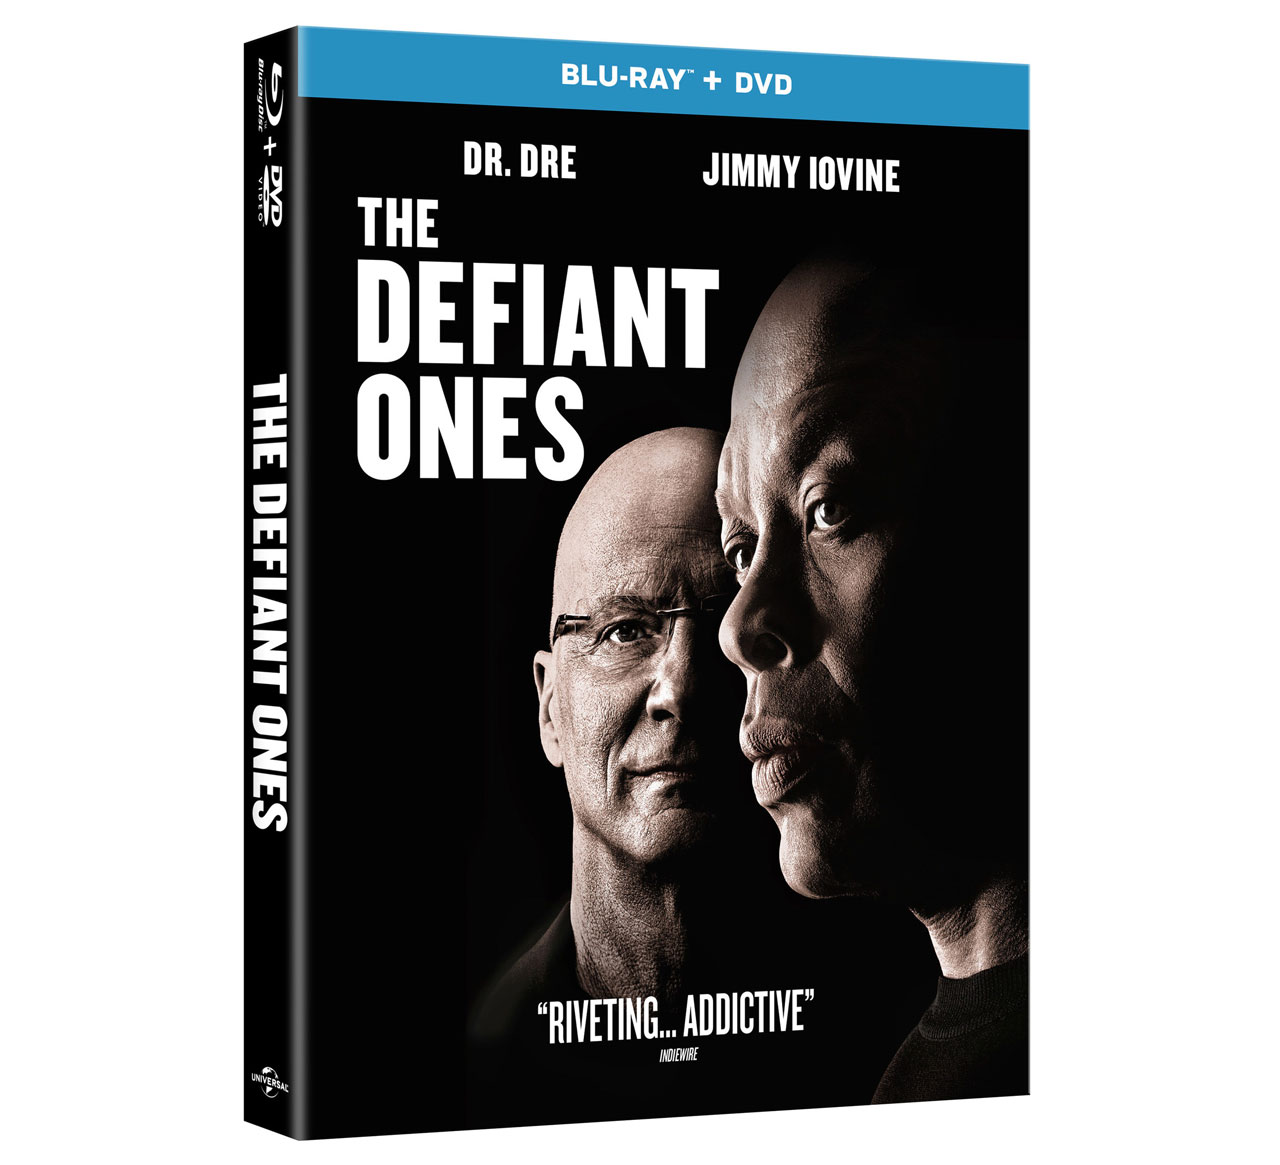 The-Defiant-Ones-Blu-ray-1280px